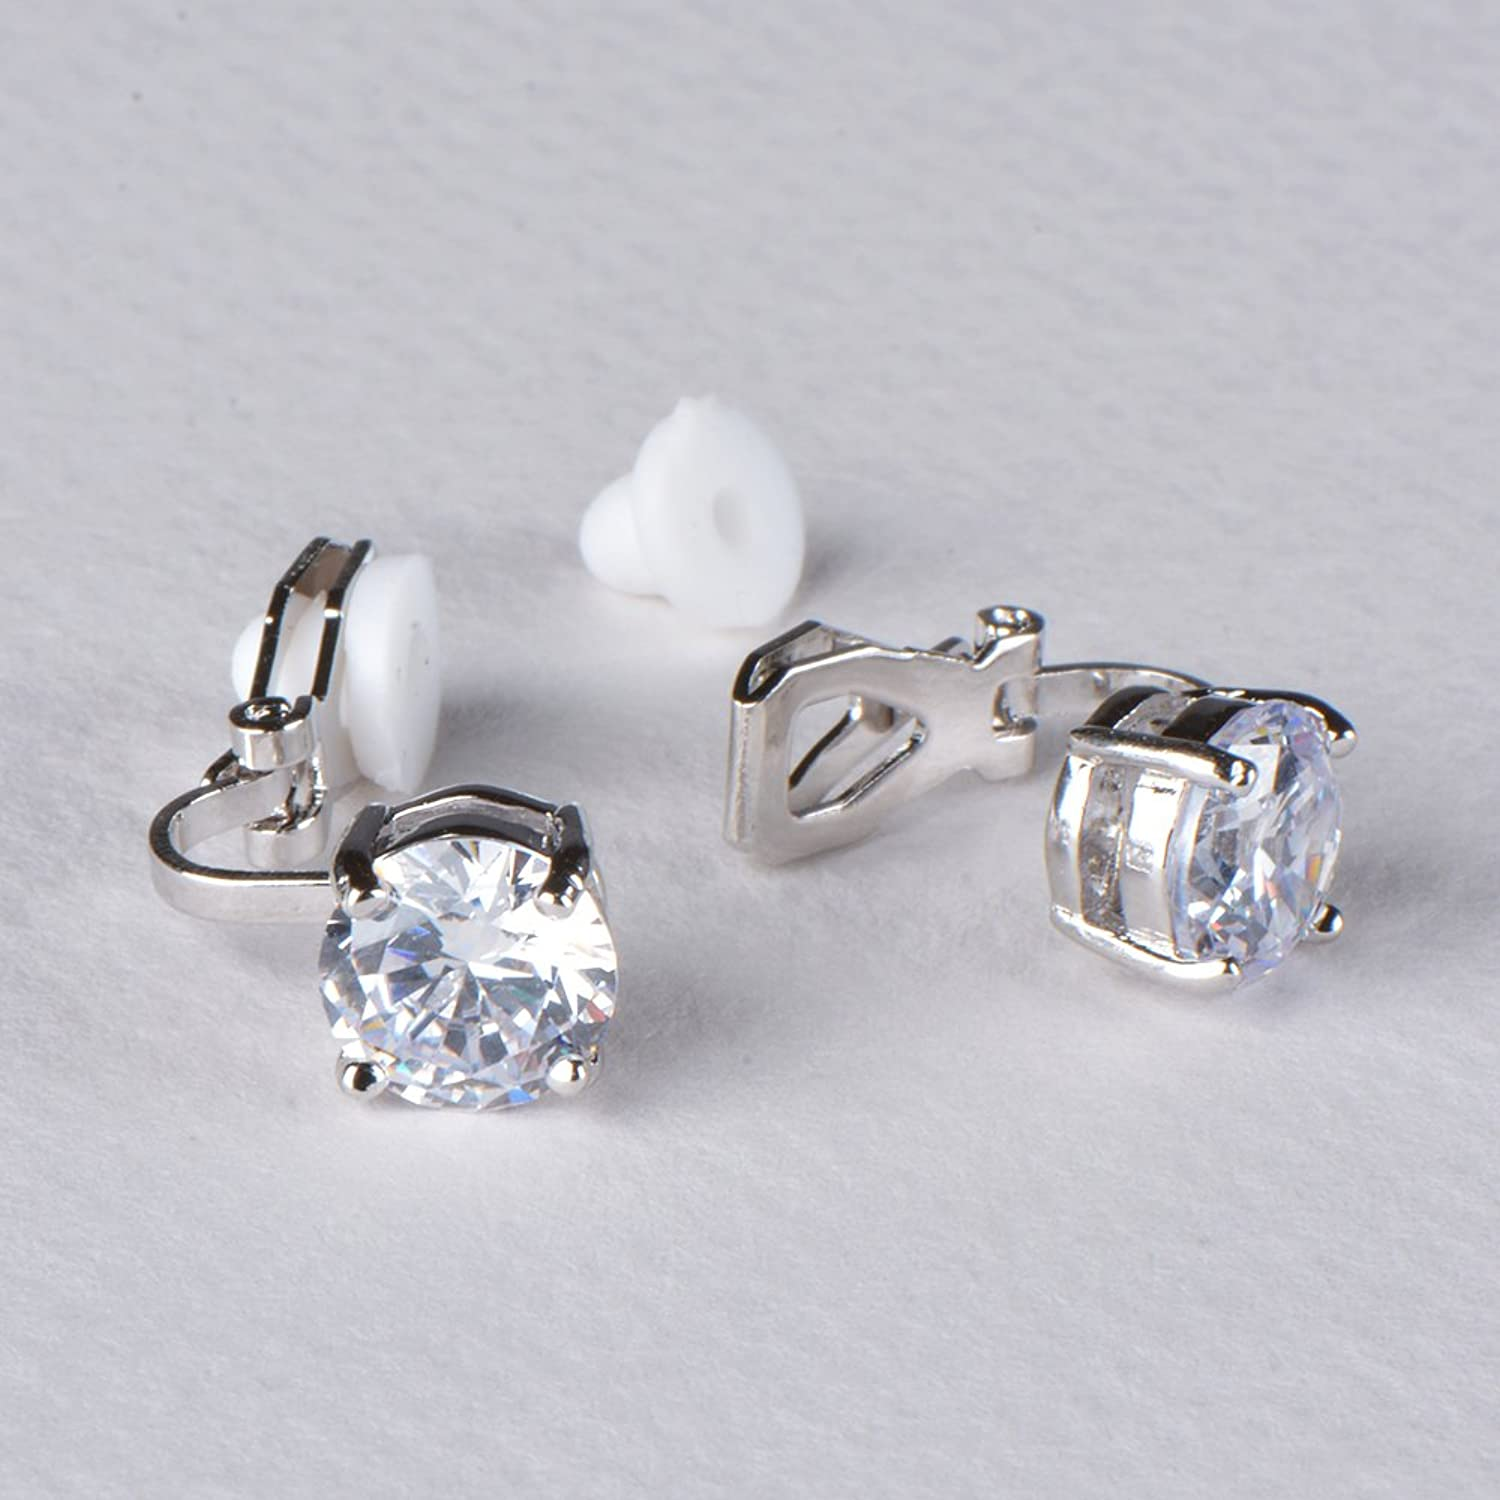 Amazon: Mariell Silver Platinumplated 2 Carat Cz Clipon Earrings   8mm Roundcut Solitaire Cubic Zirconia Studs: Jewelry